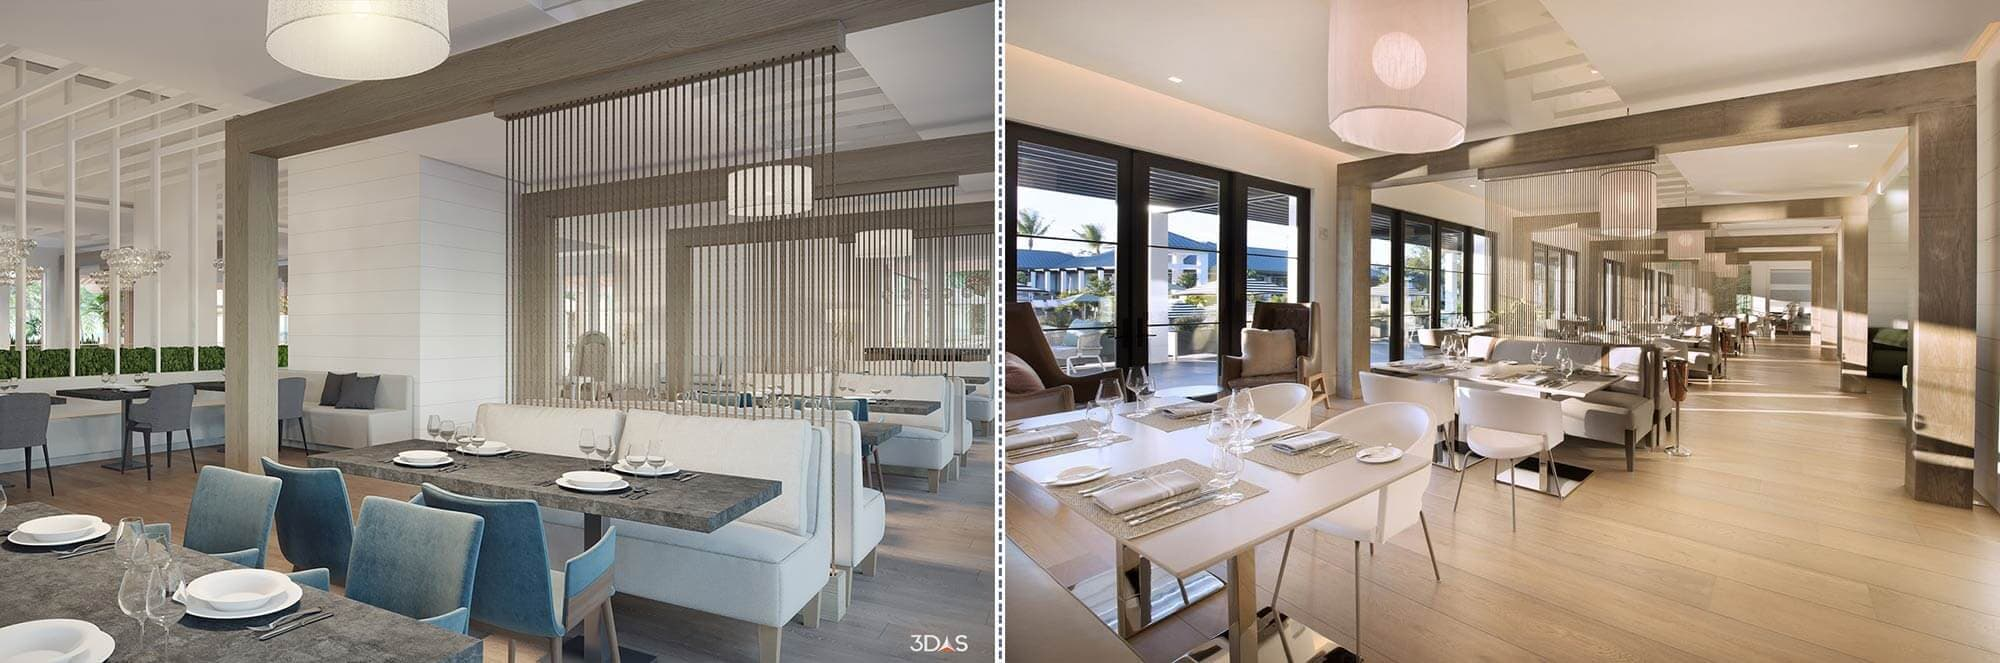 Kalea Bay Dining Room 3D Rendering (Left) and Photo (Right)